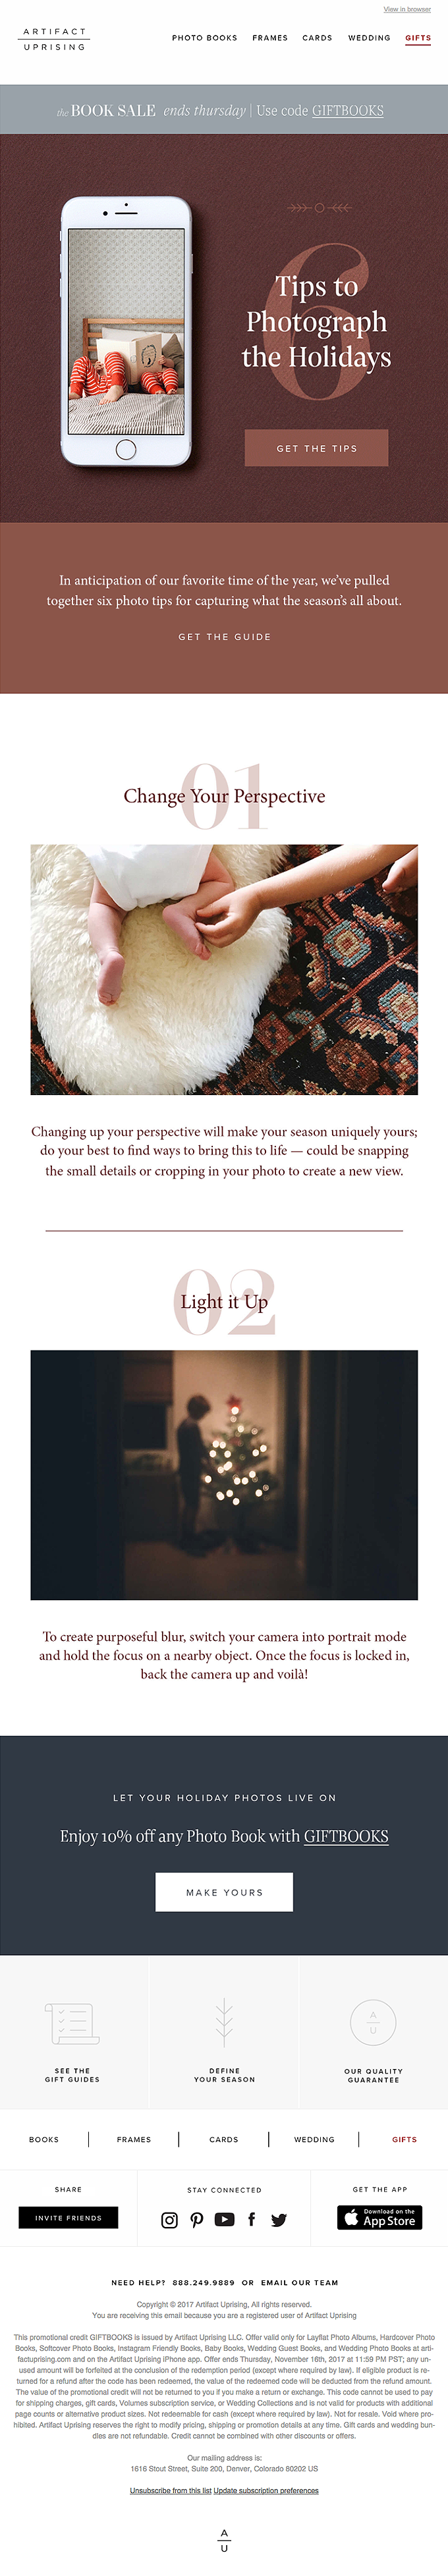 6 Tips to Photograph the Holidays